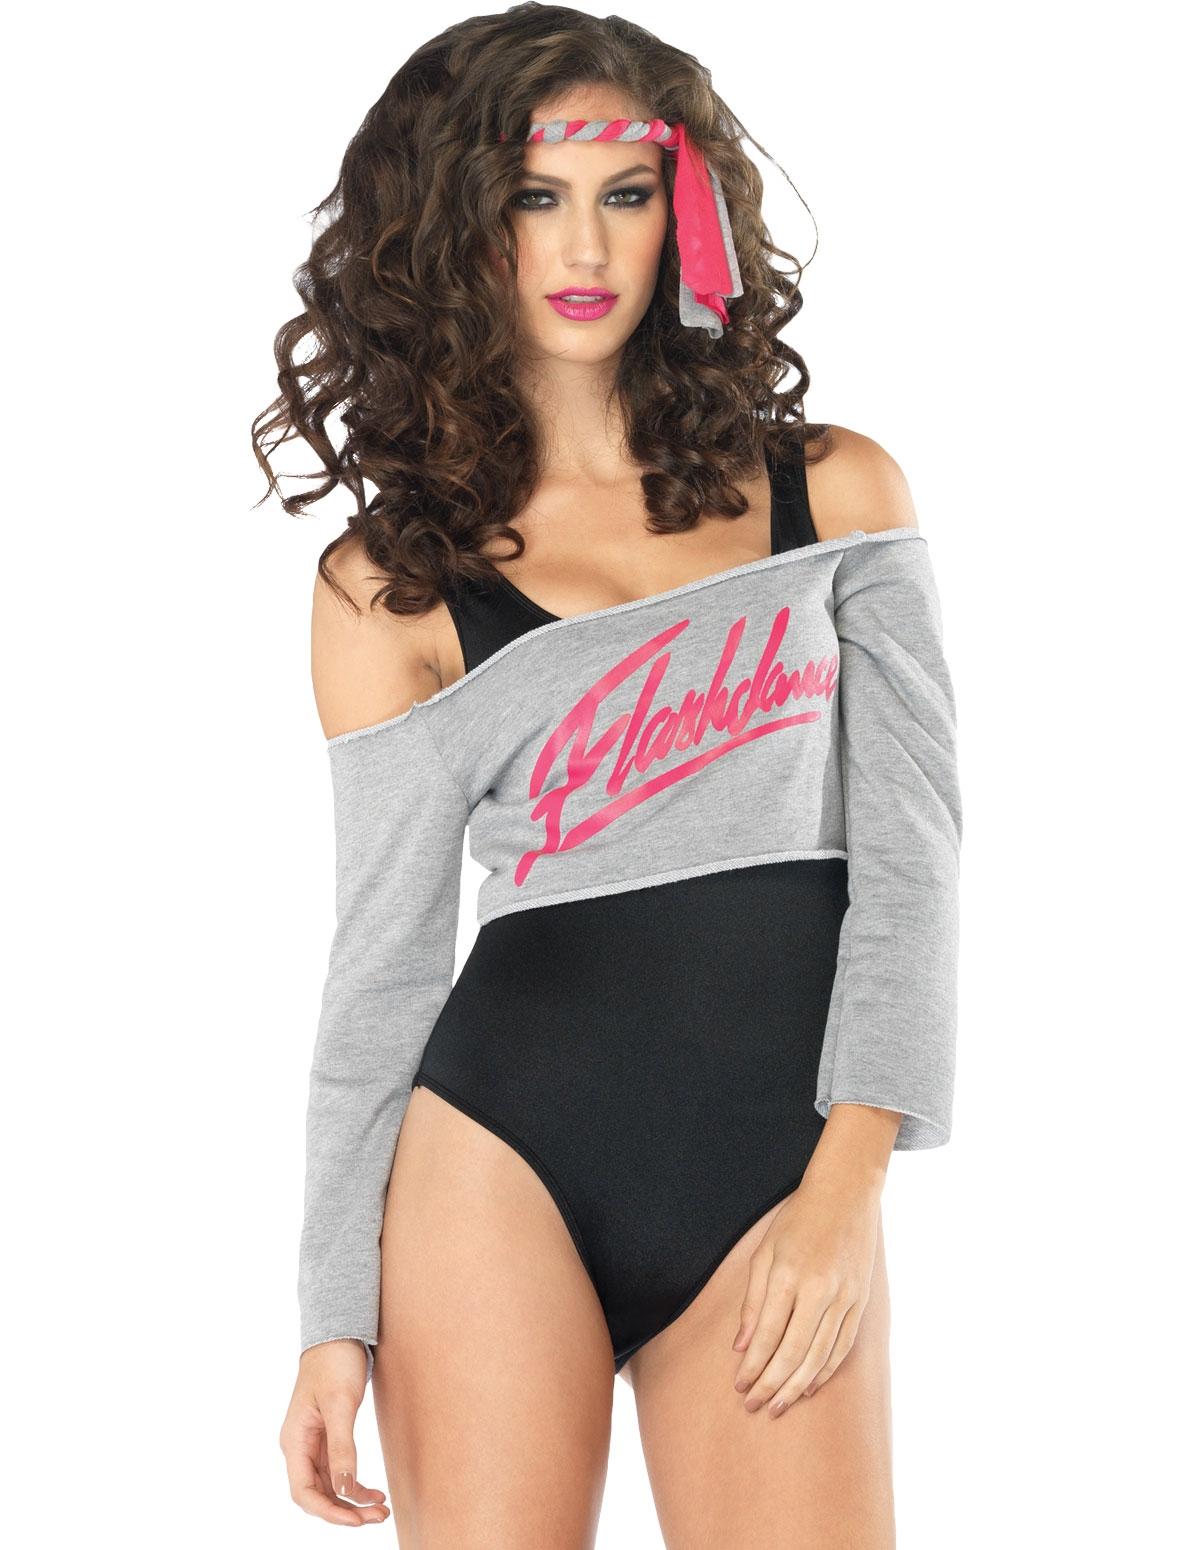 Flashdance Bodysuit Costume